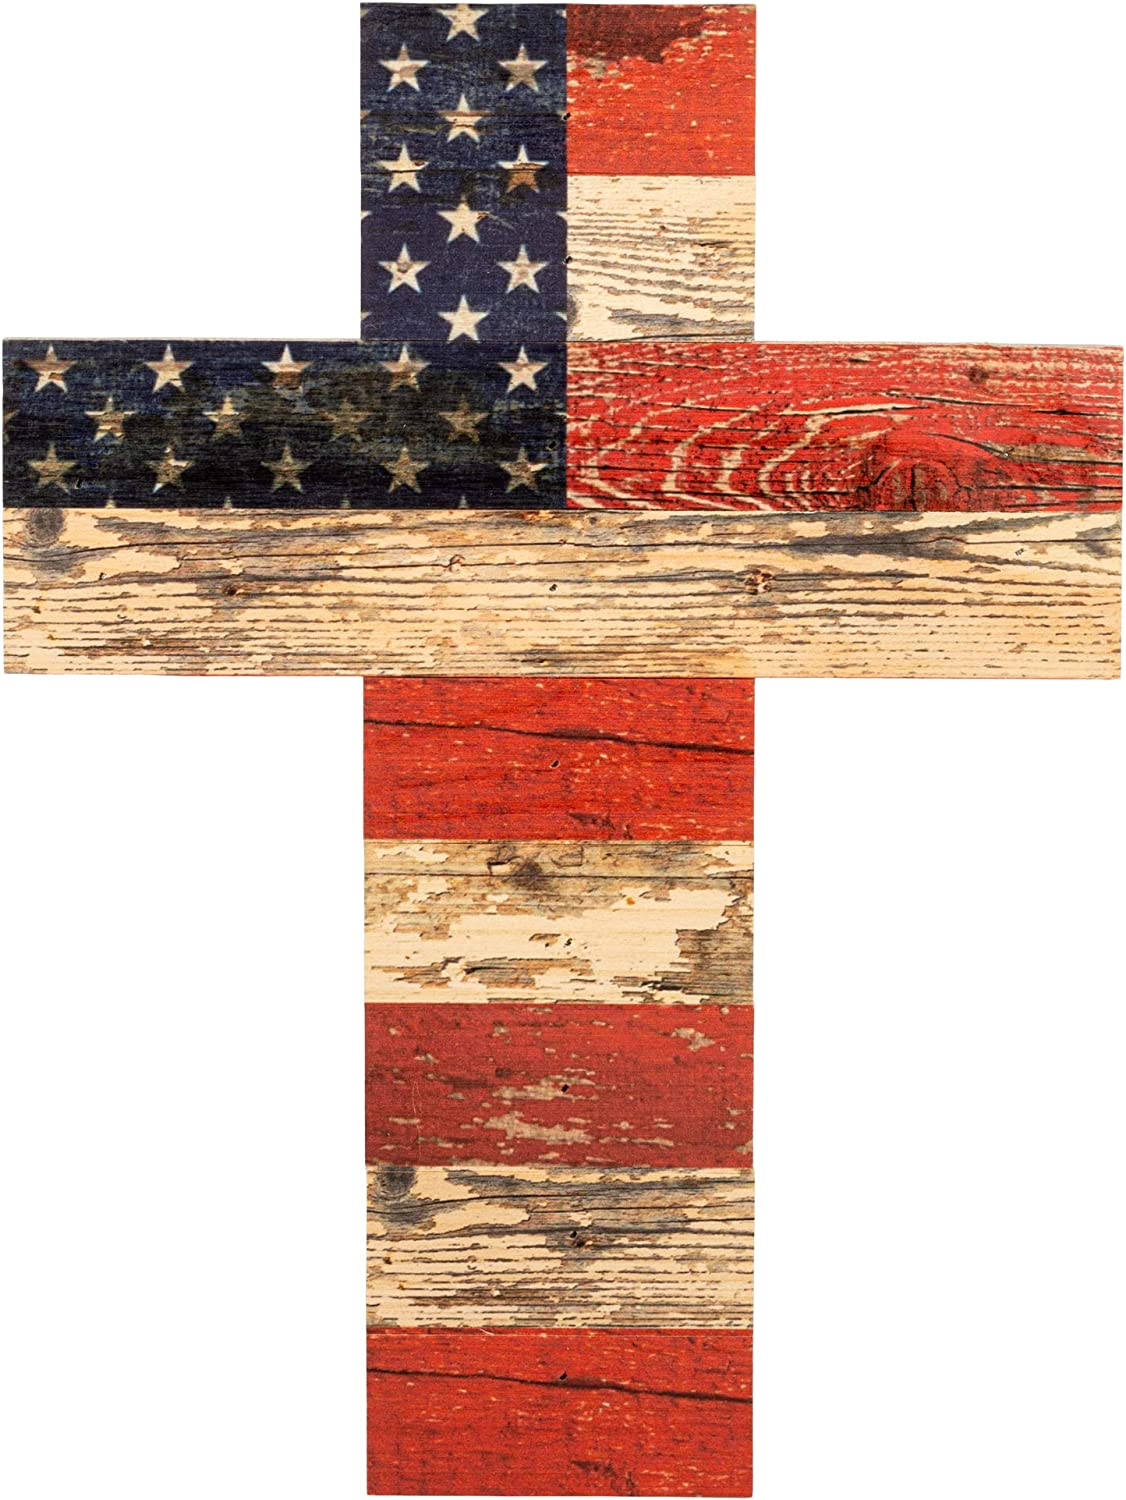 P. Graham Dunn American Flag Patriotic Red White and Blue Crackled Design 14 x 10 Wood Wall Art Cross